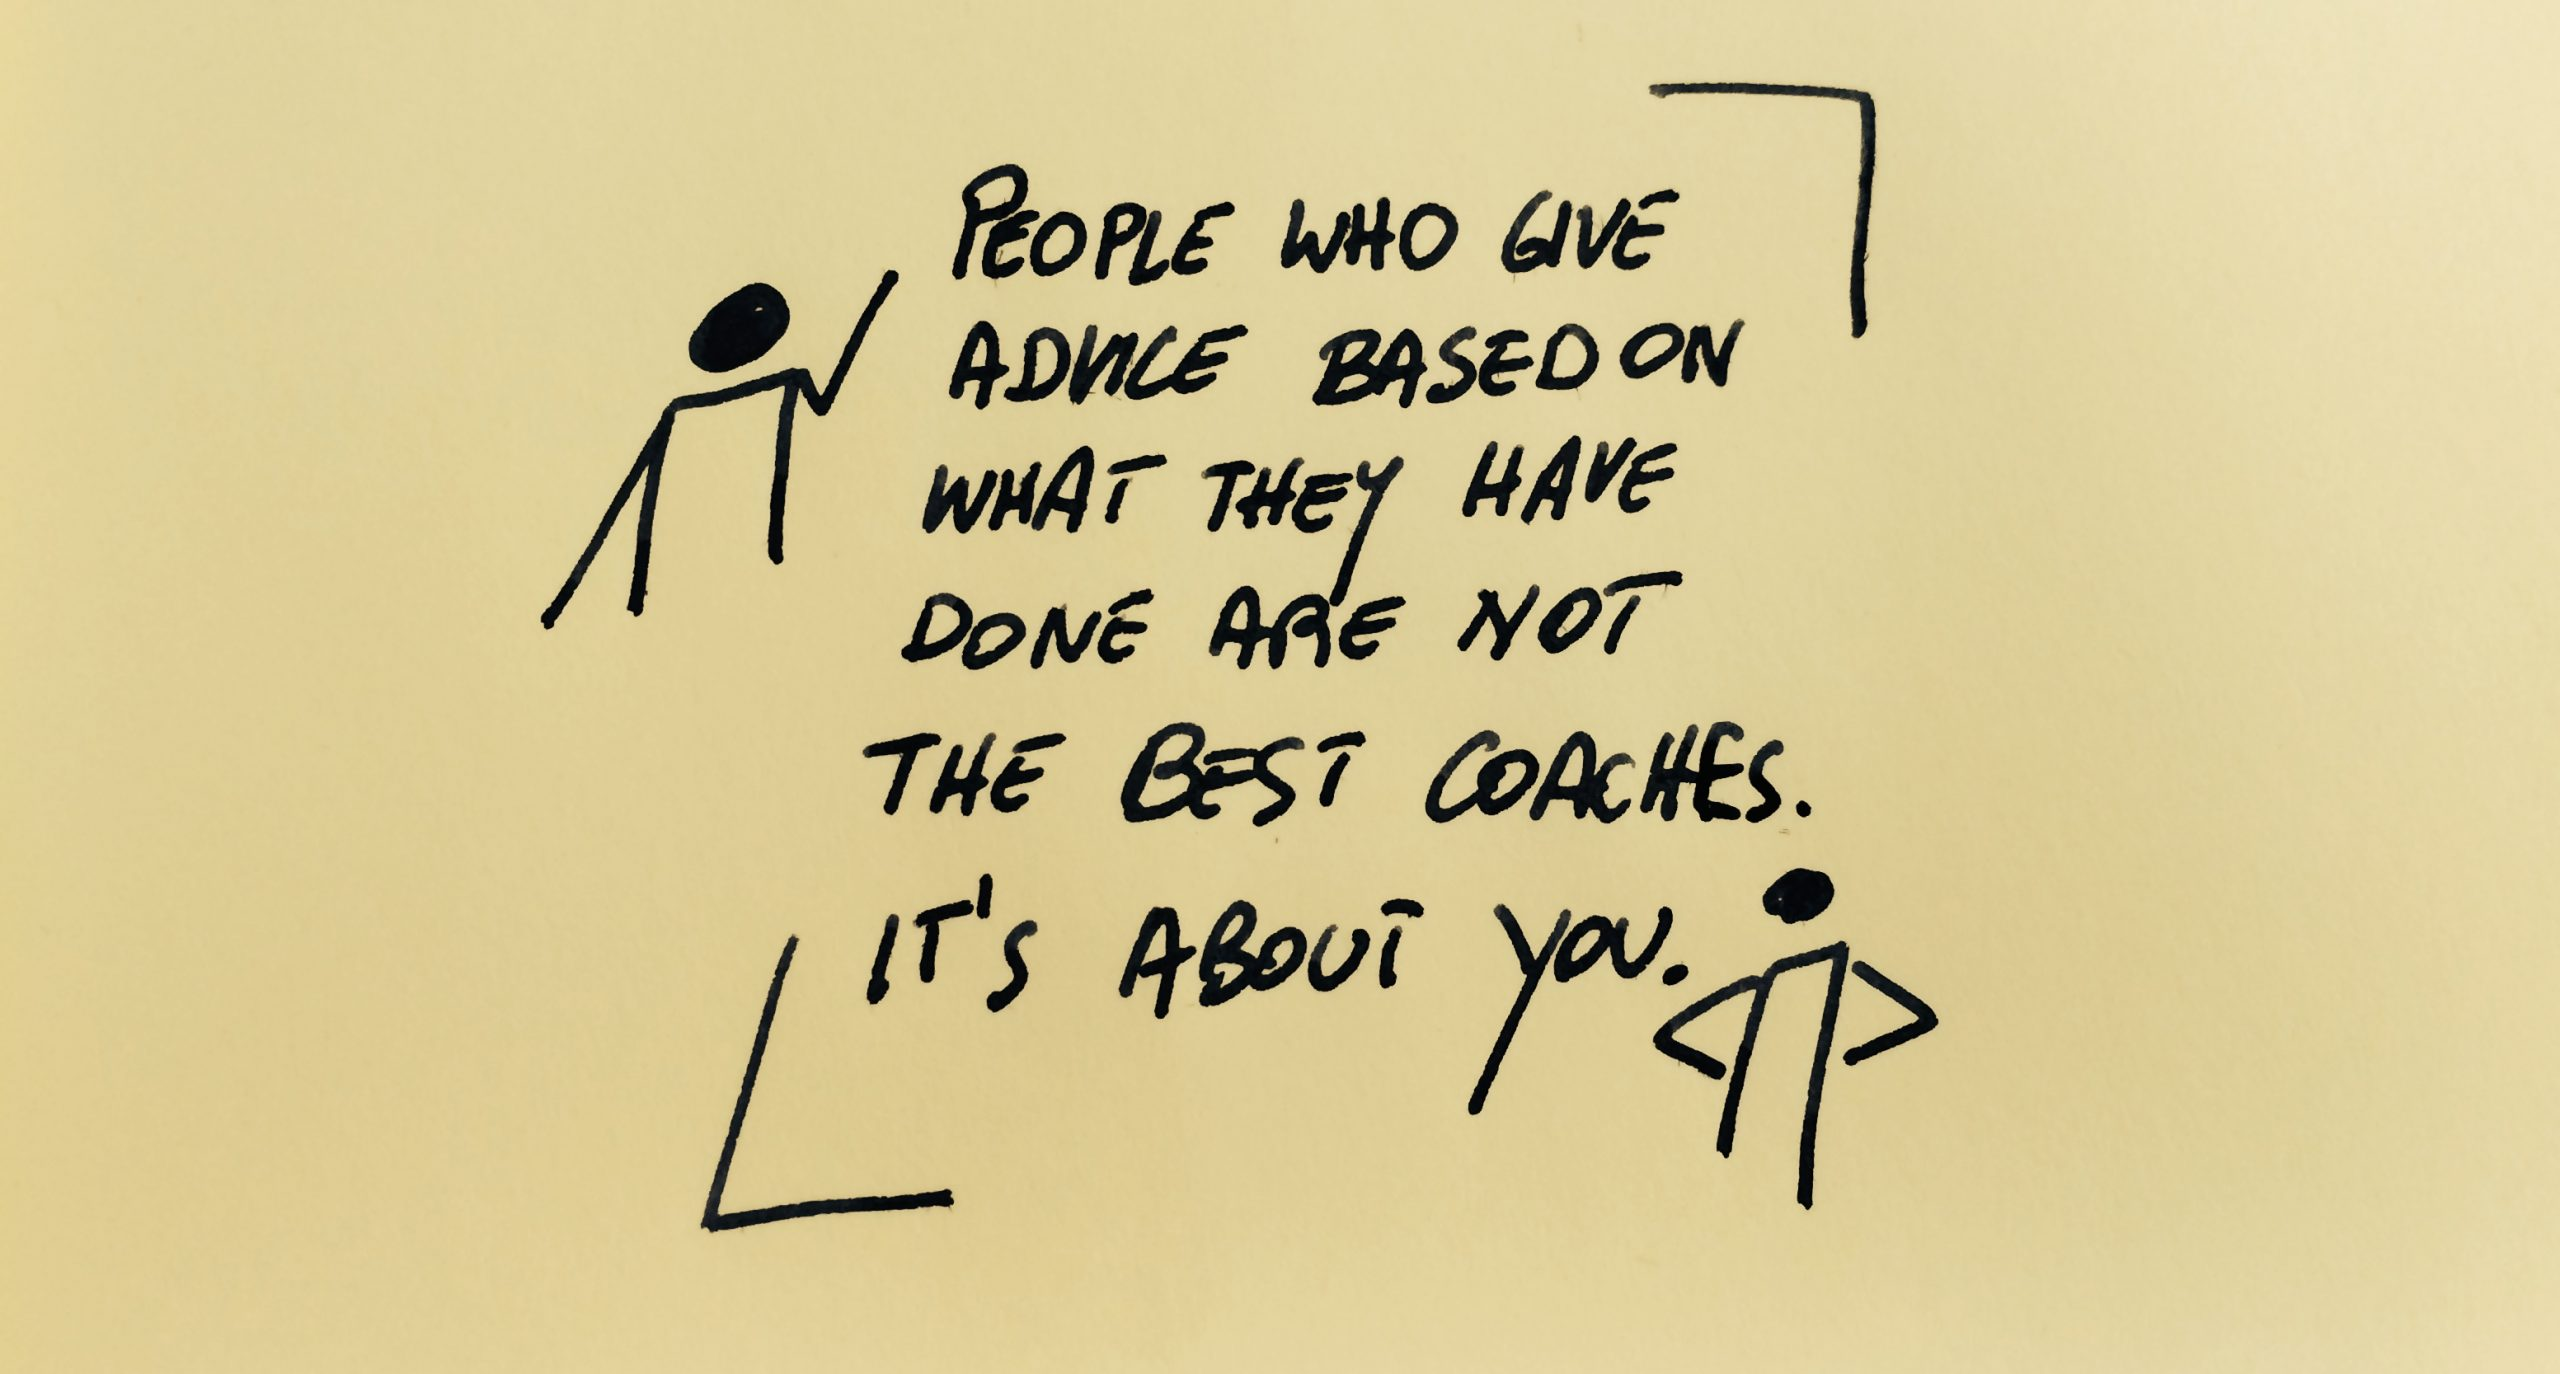 People who give Advice are not Coaches!